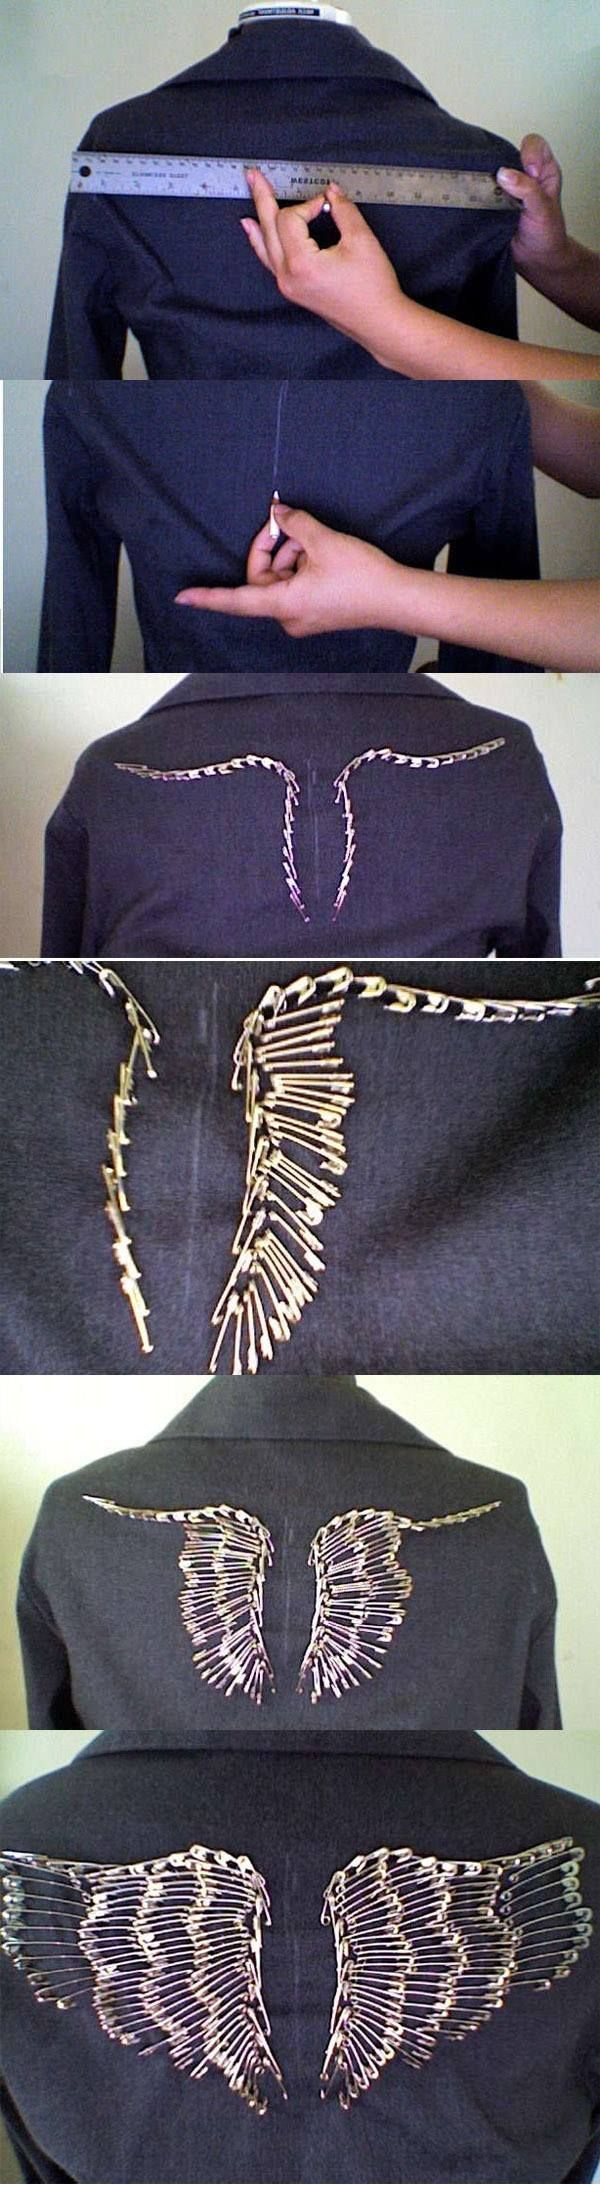 love it! safety pin wings